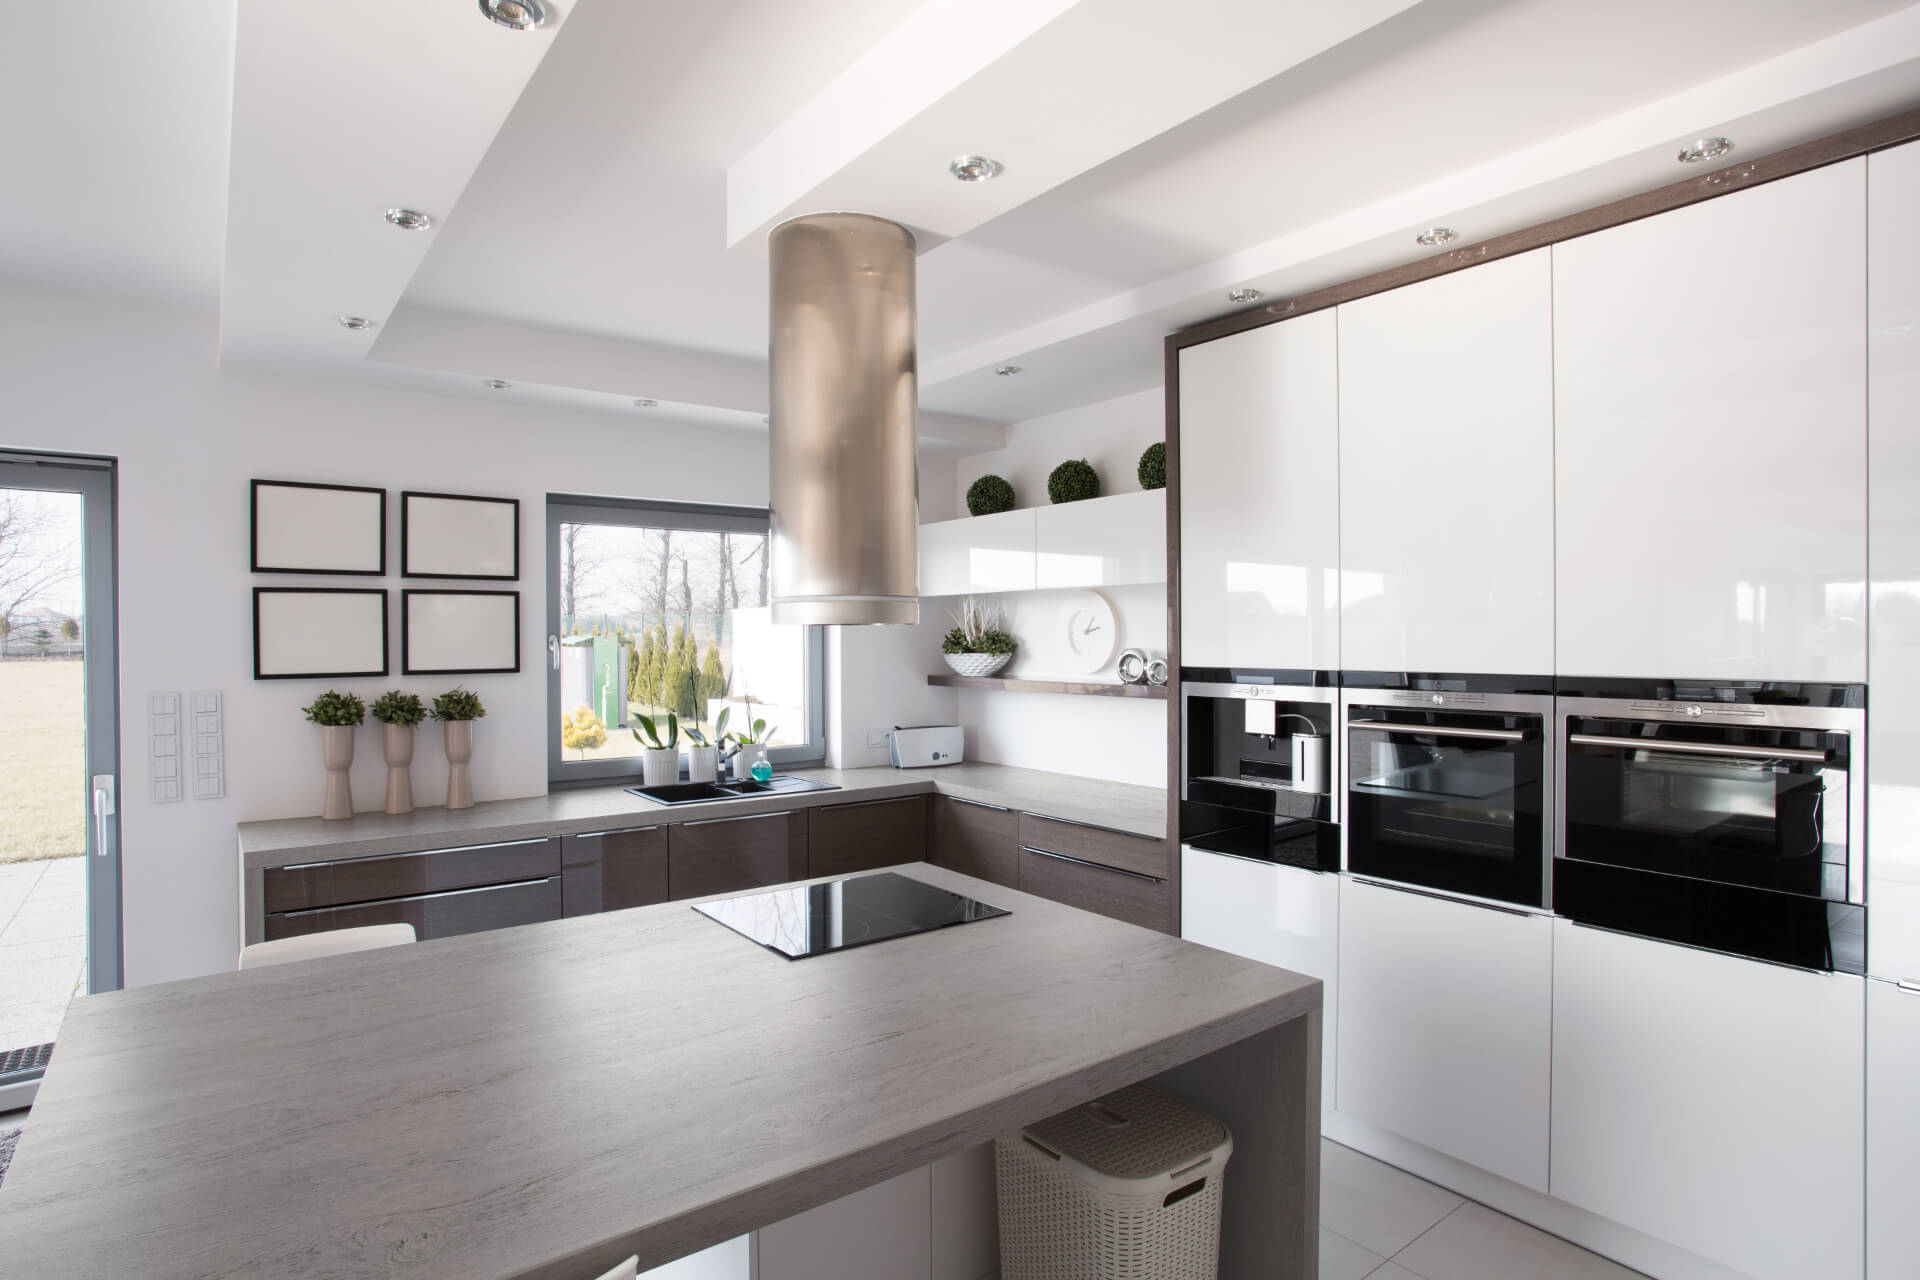 Cosentino Dekton White Shine Kitchen